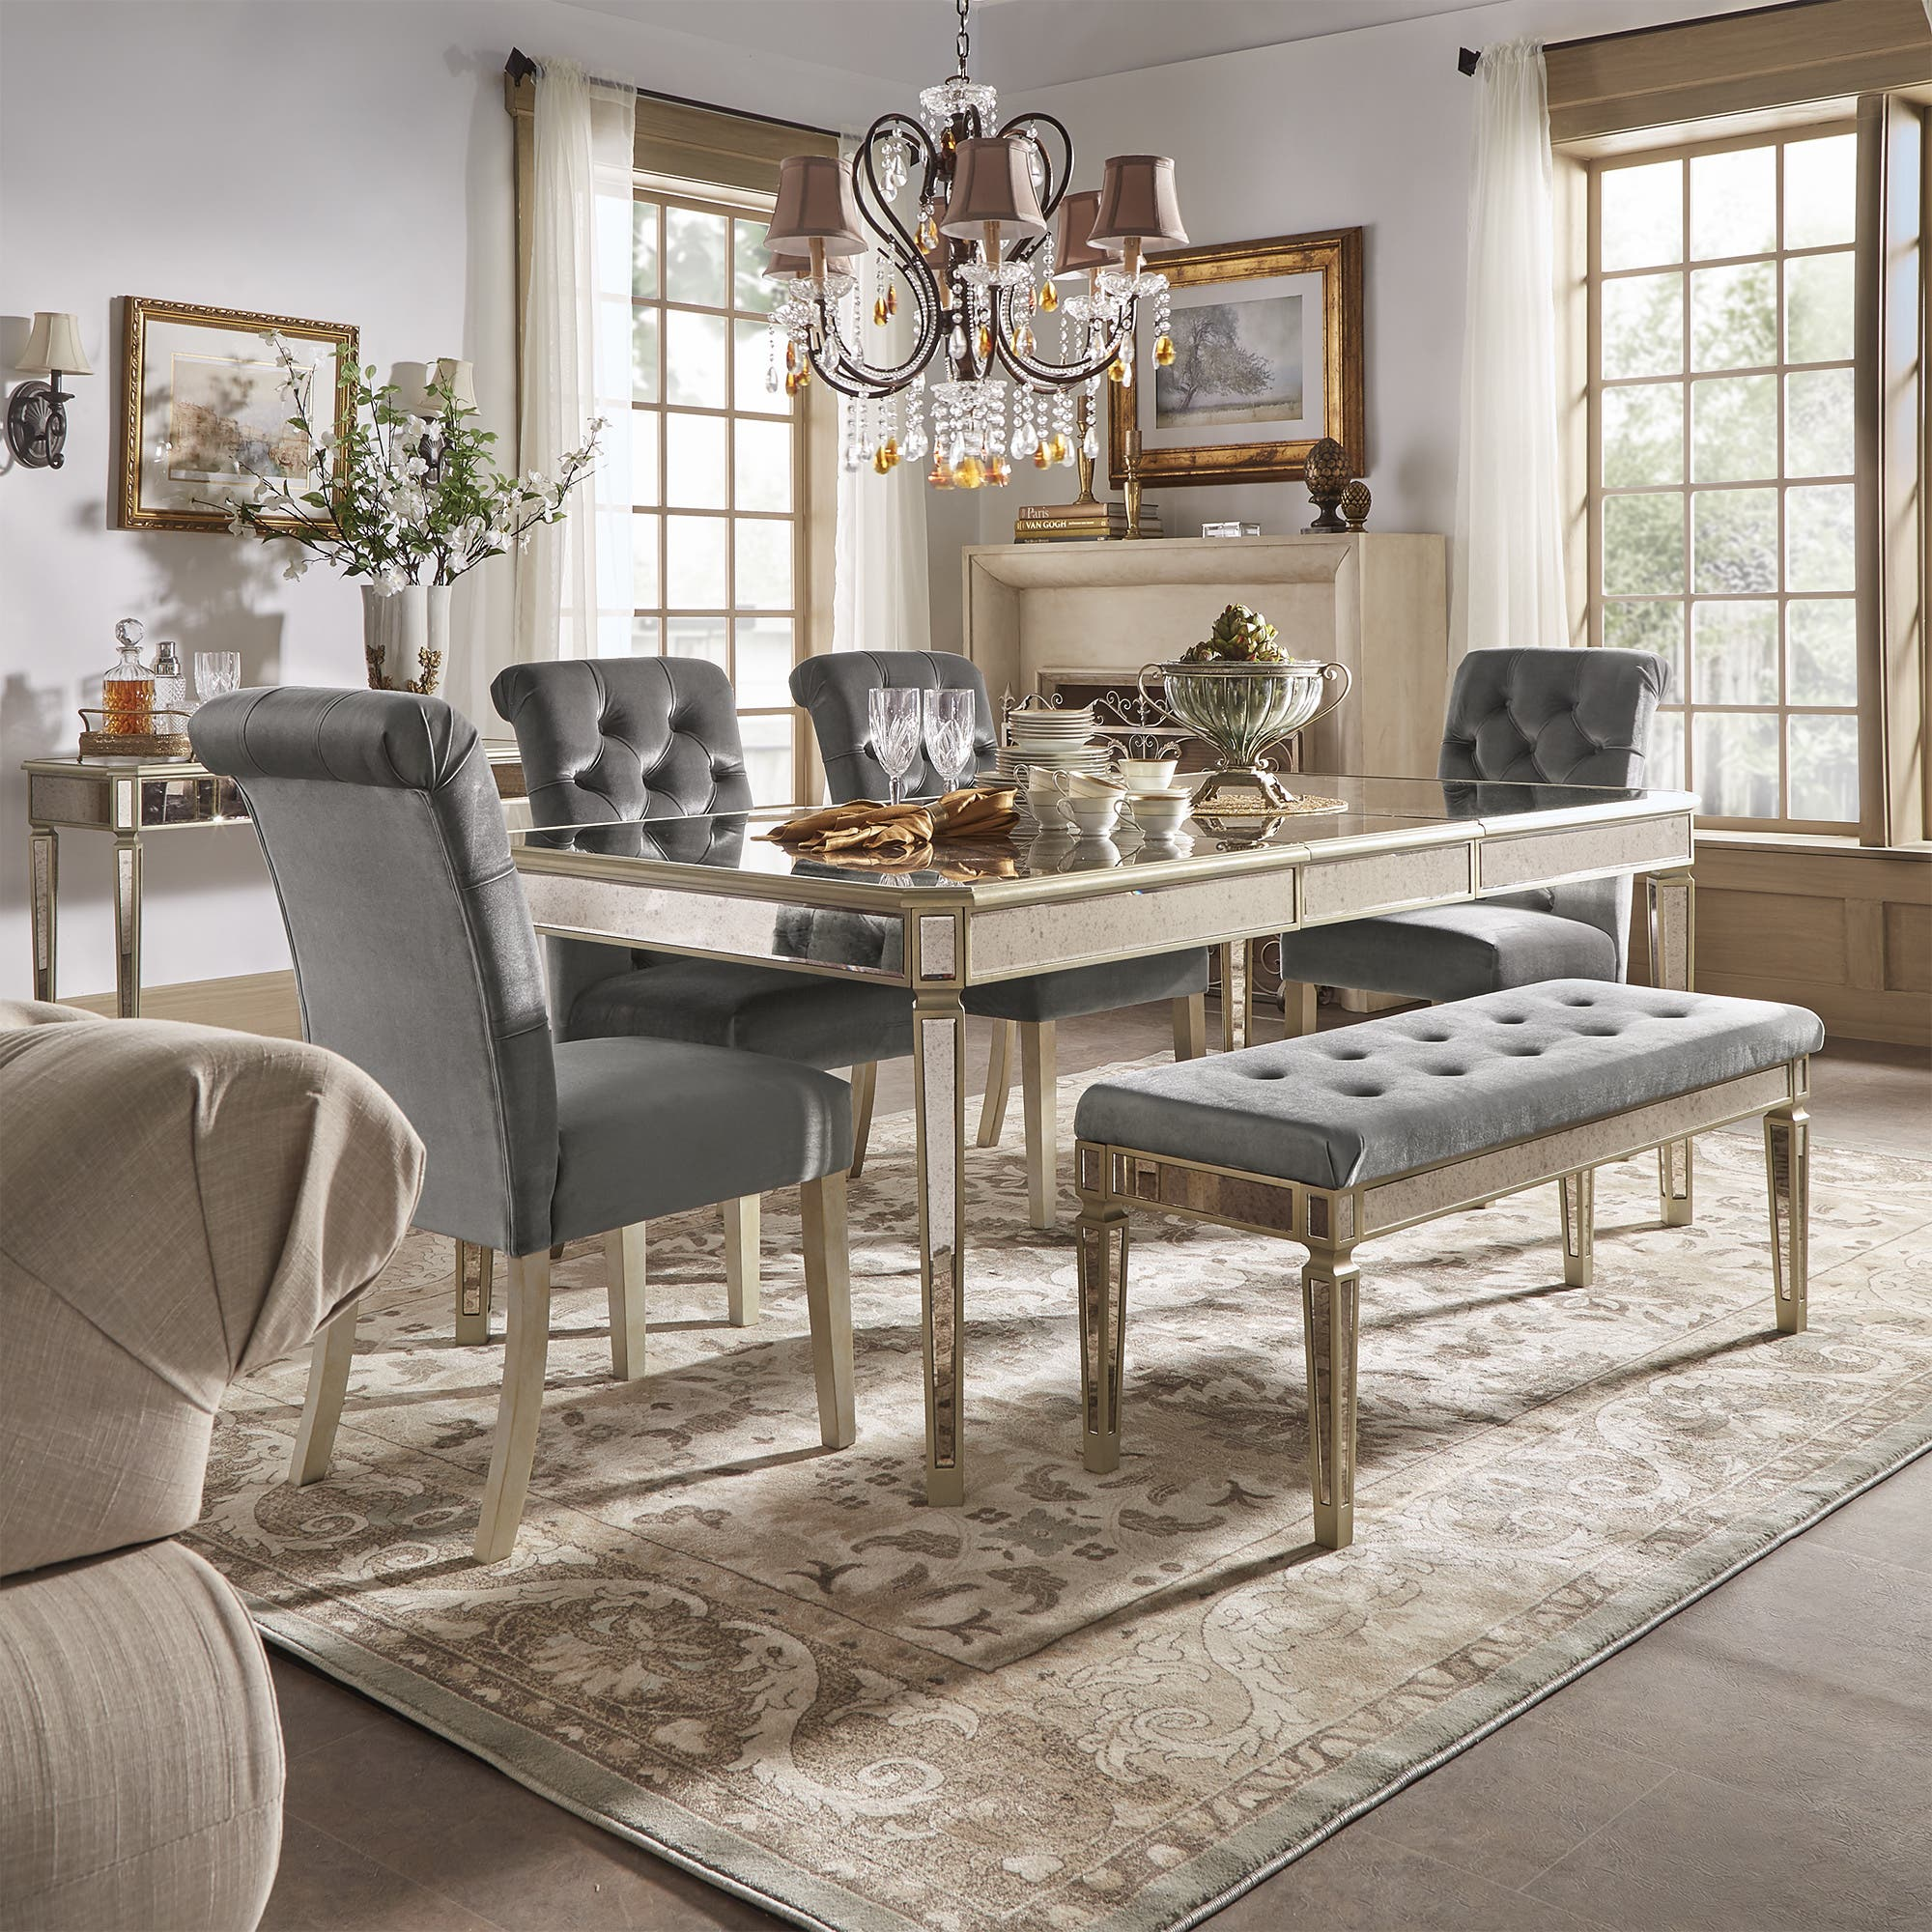 My Best Buy Dining: Buy Kitchen & Dining Room Sets Online At Overstock